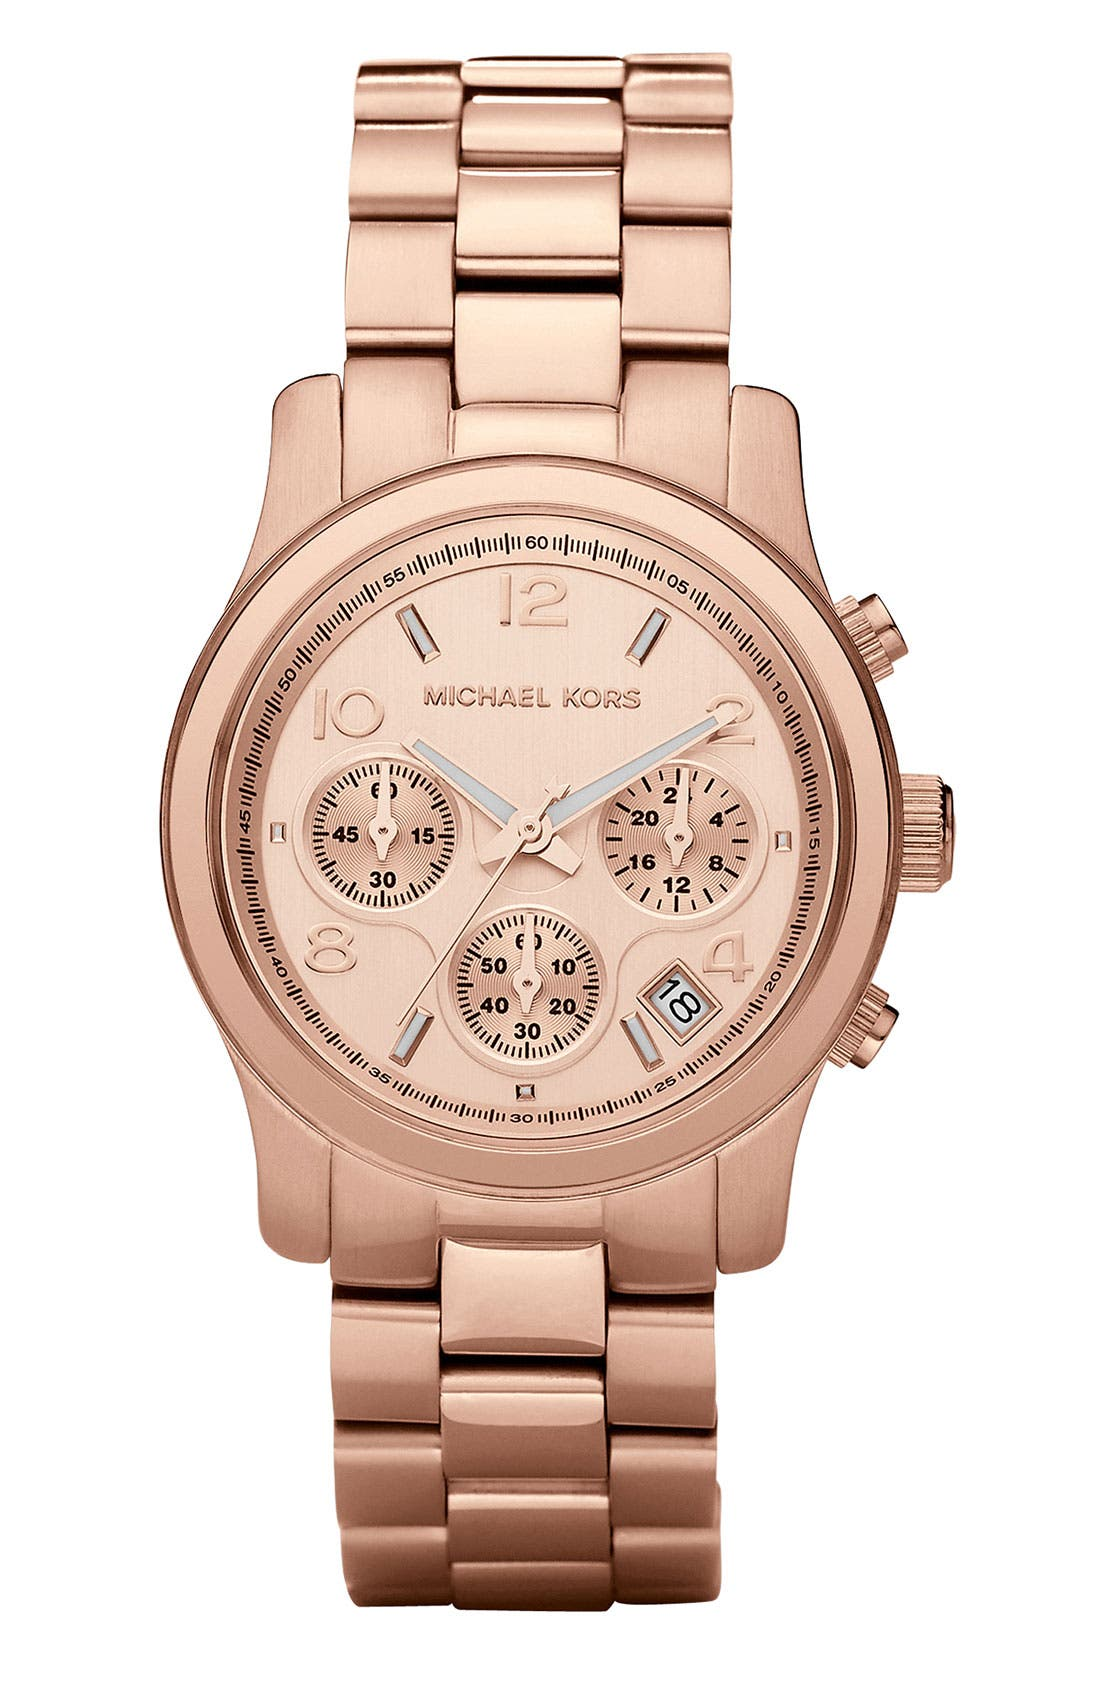 MICHAEL MICHAEL KORS Michael Kors 'Runway' Rose Gold Plated Watch, 37mm, Main, color, 710